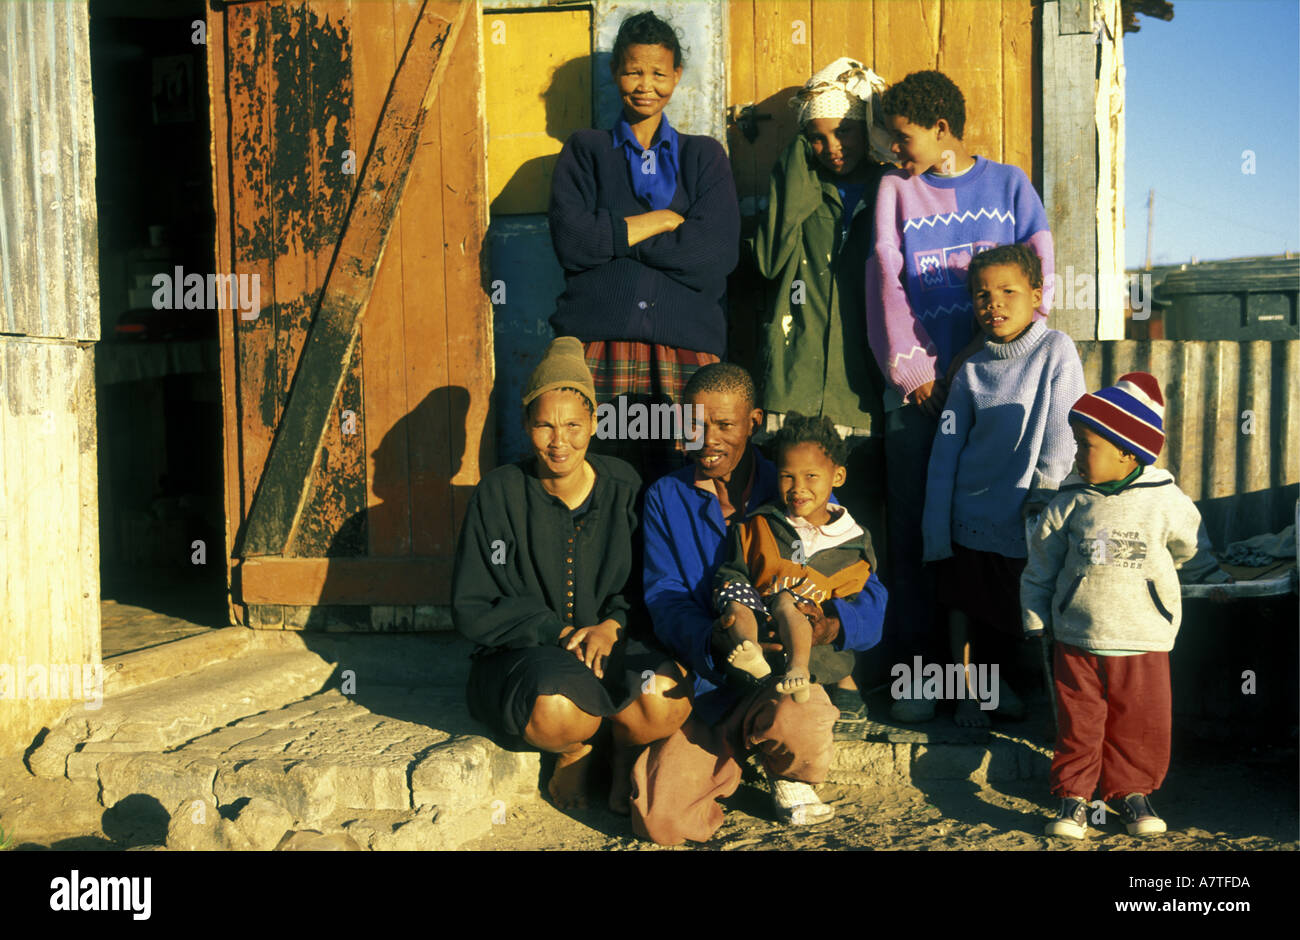 Local people from Luderitz Namibia south west Africa - Stock Image